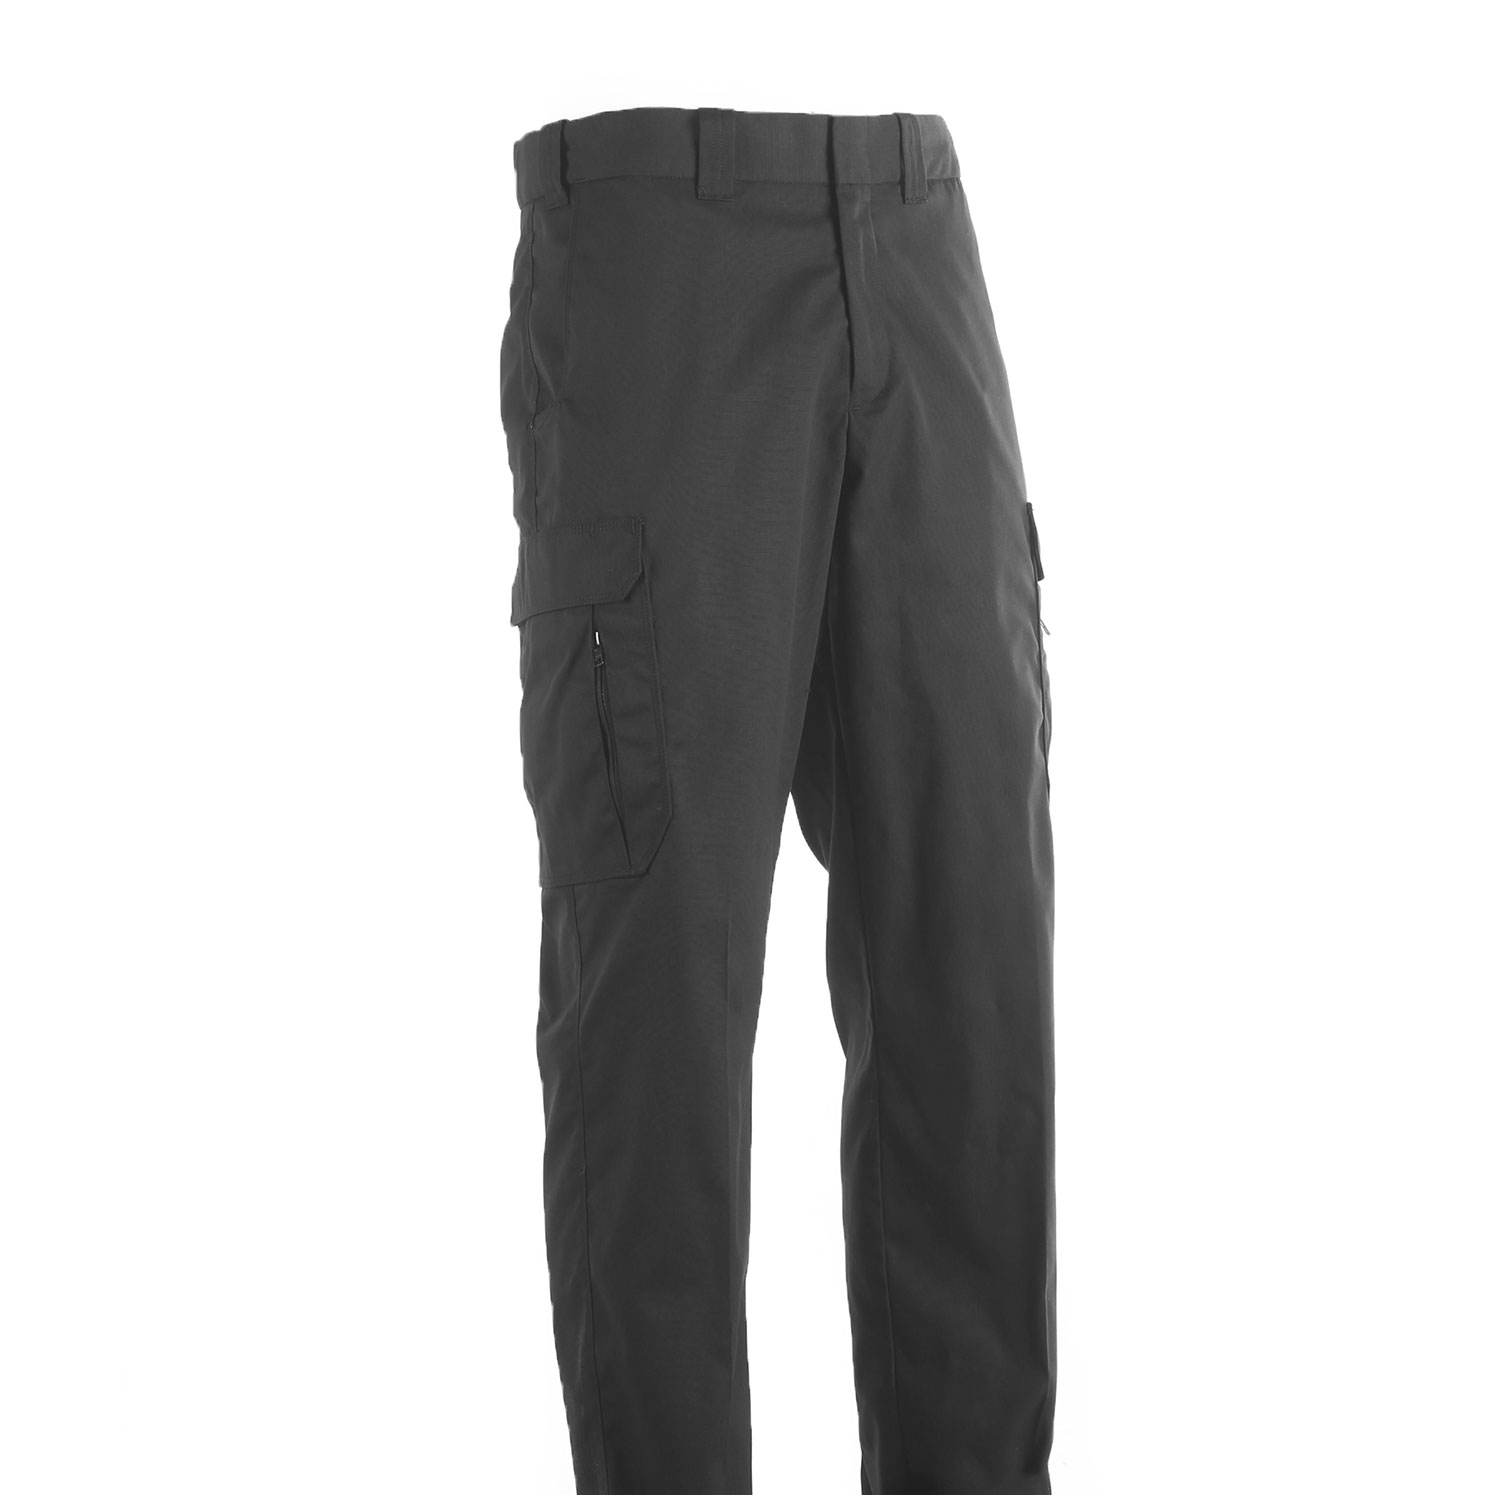 Cross Fx Class B Style Uniform Pants by Flying Cross